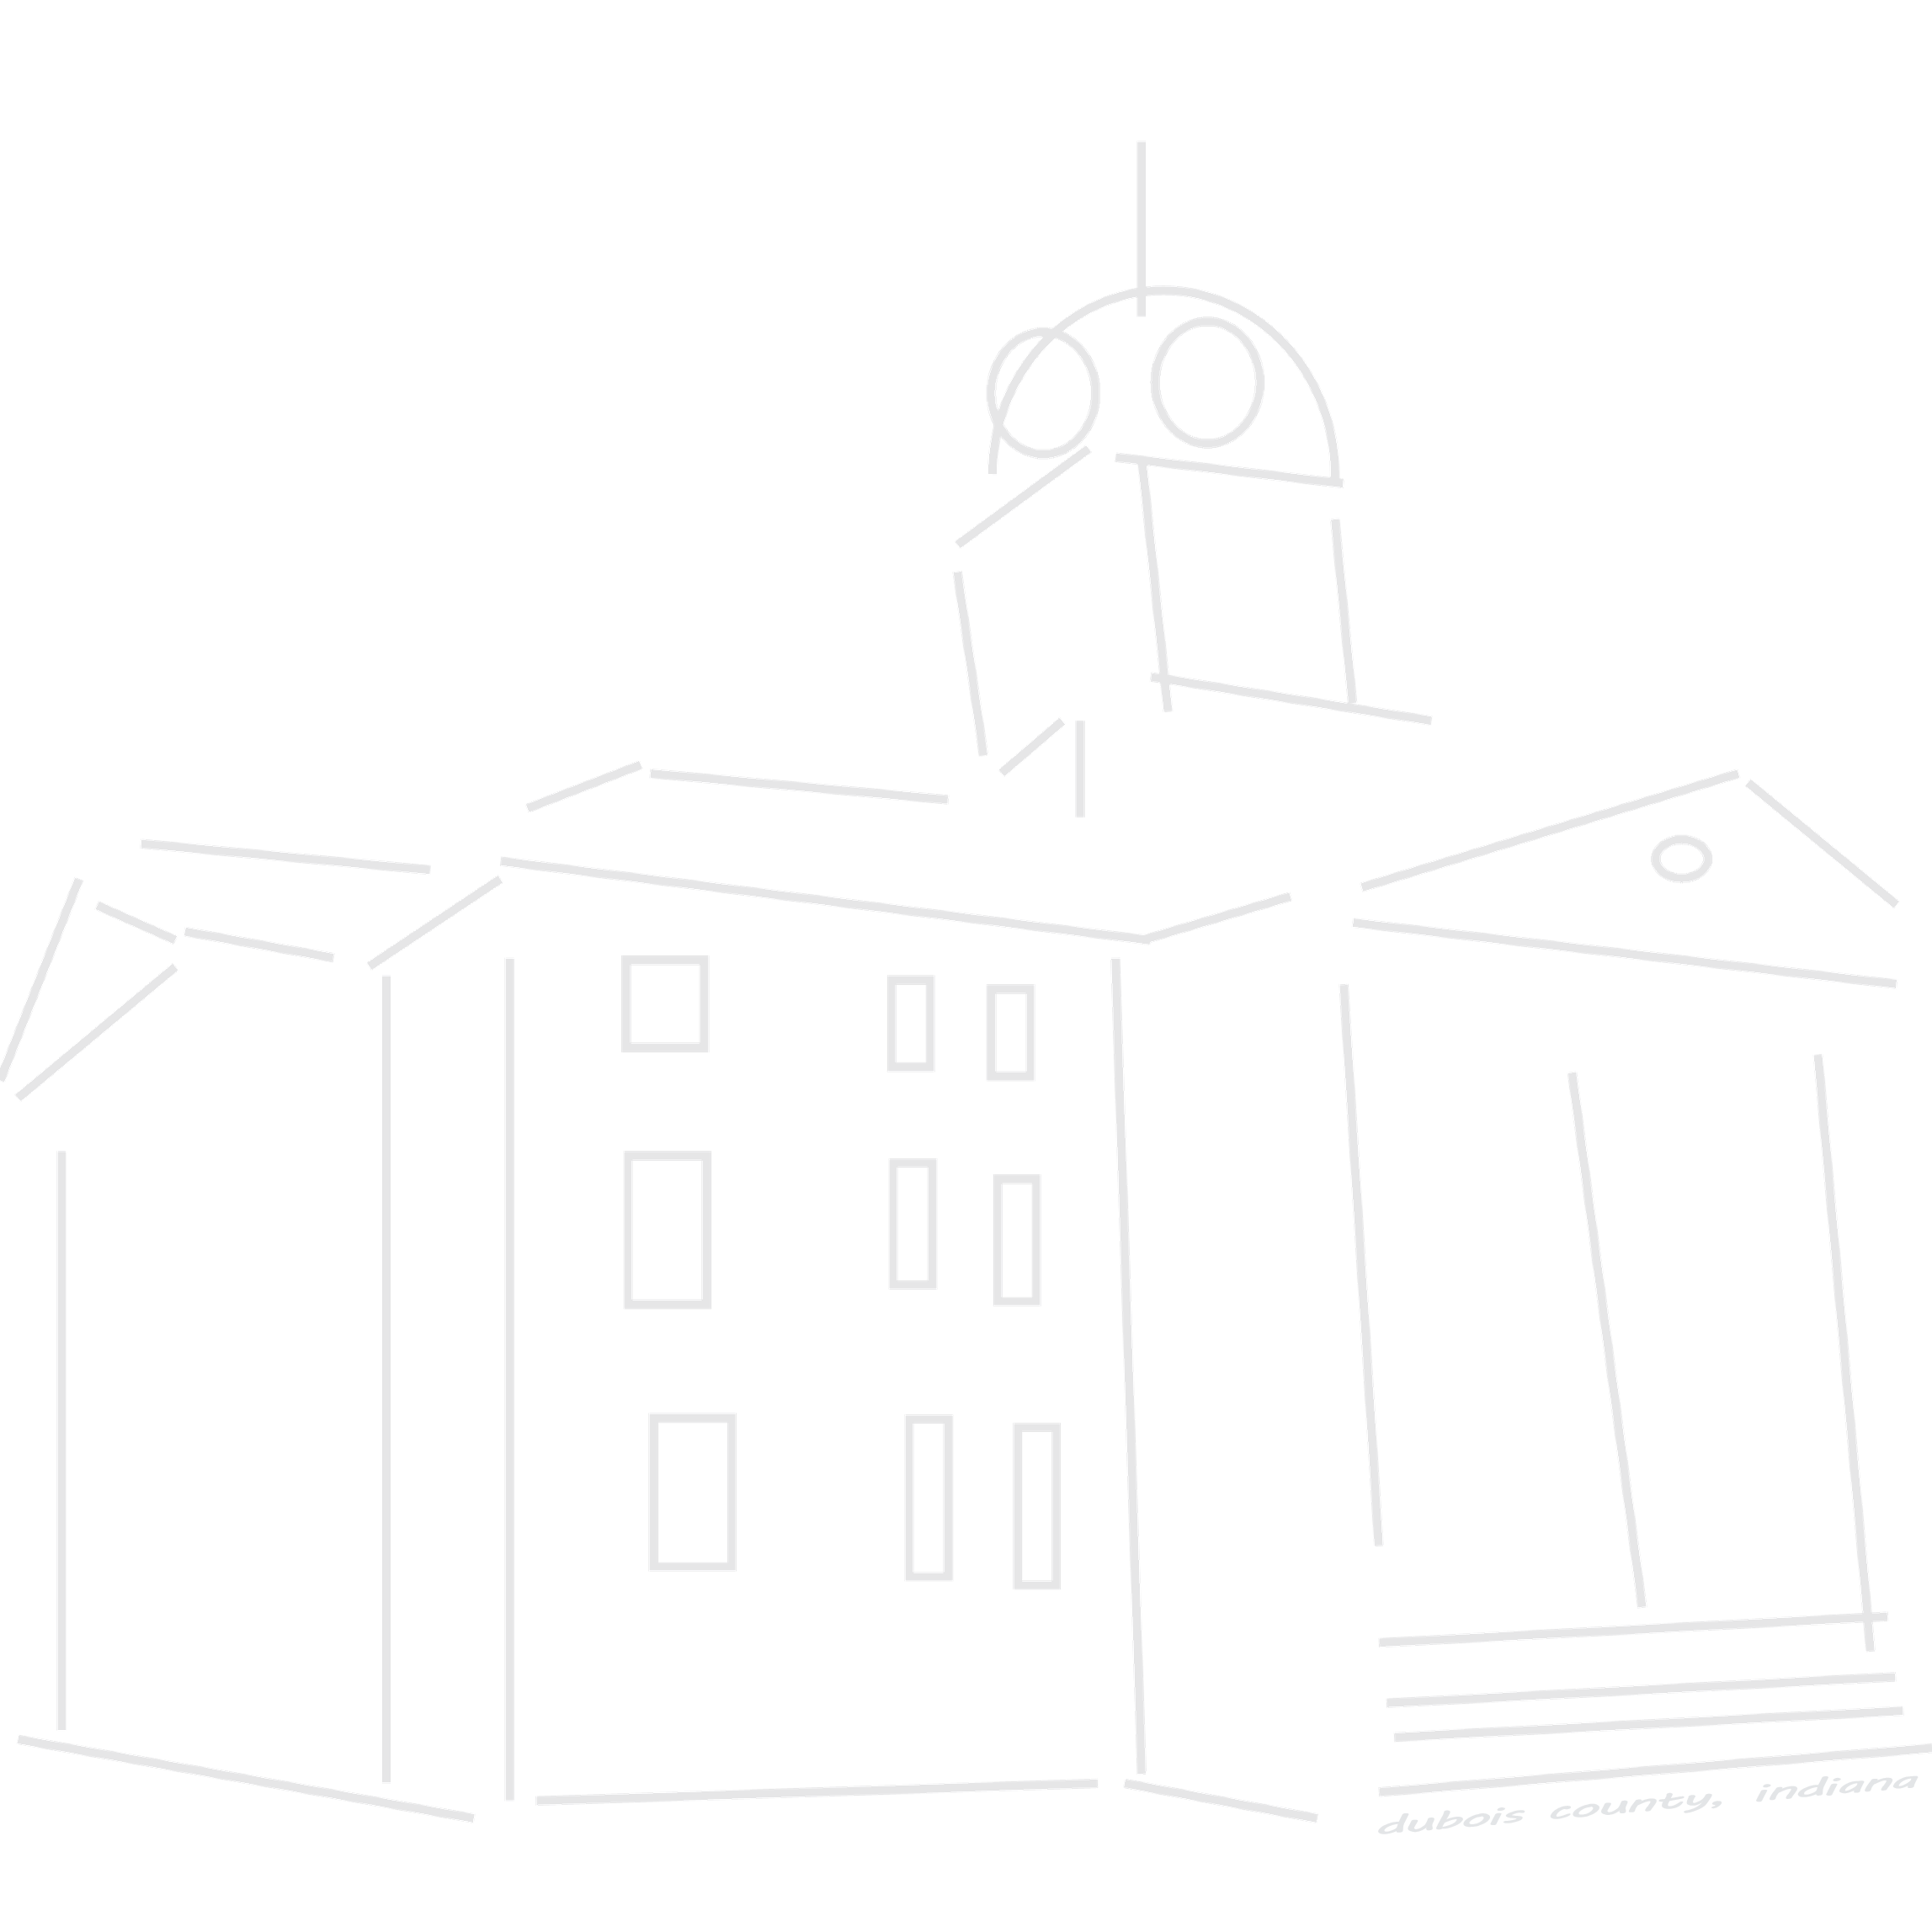 Government clipart courthouse. Dubois county always indiana